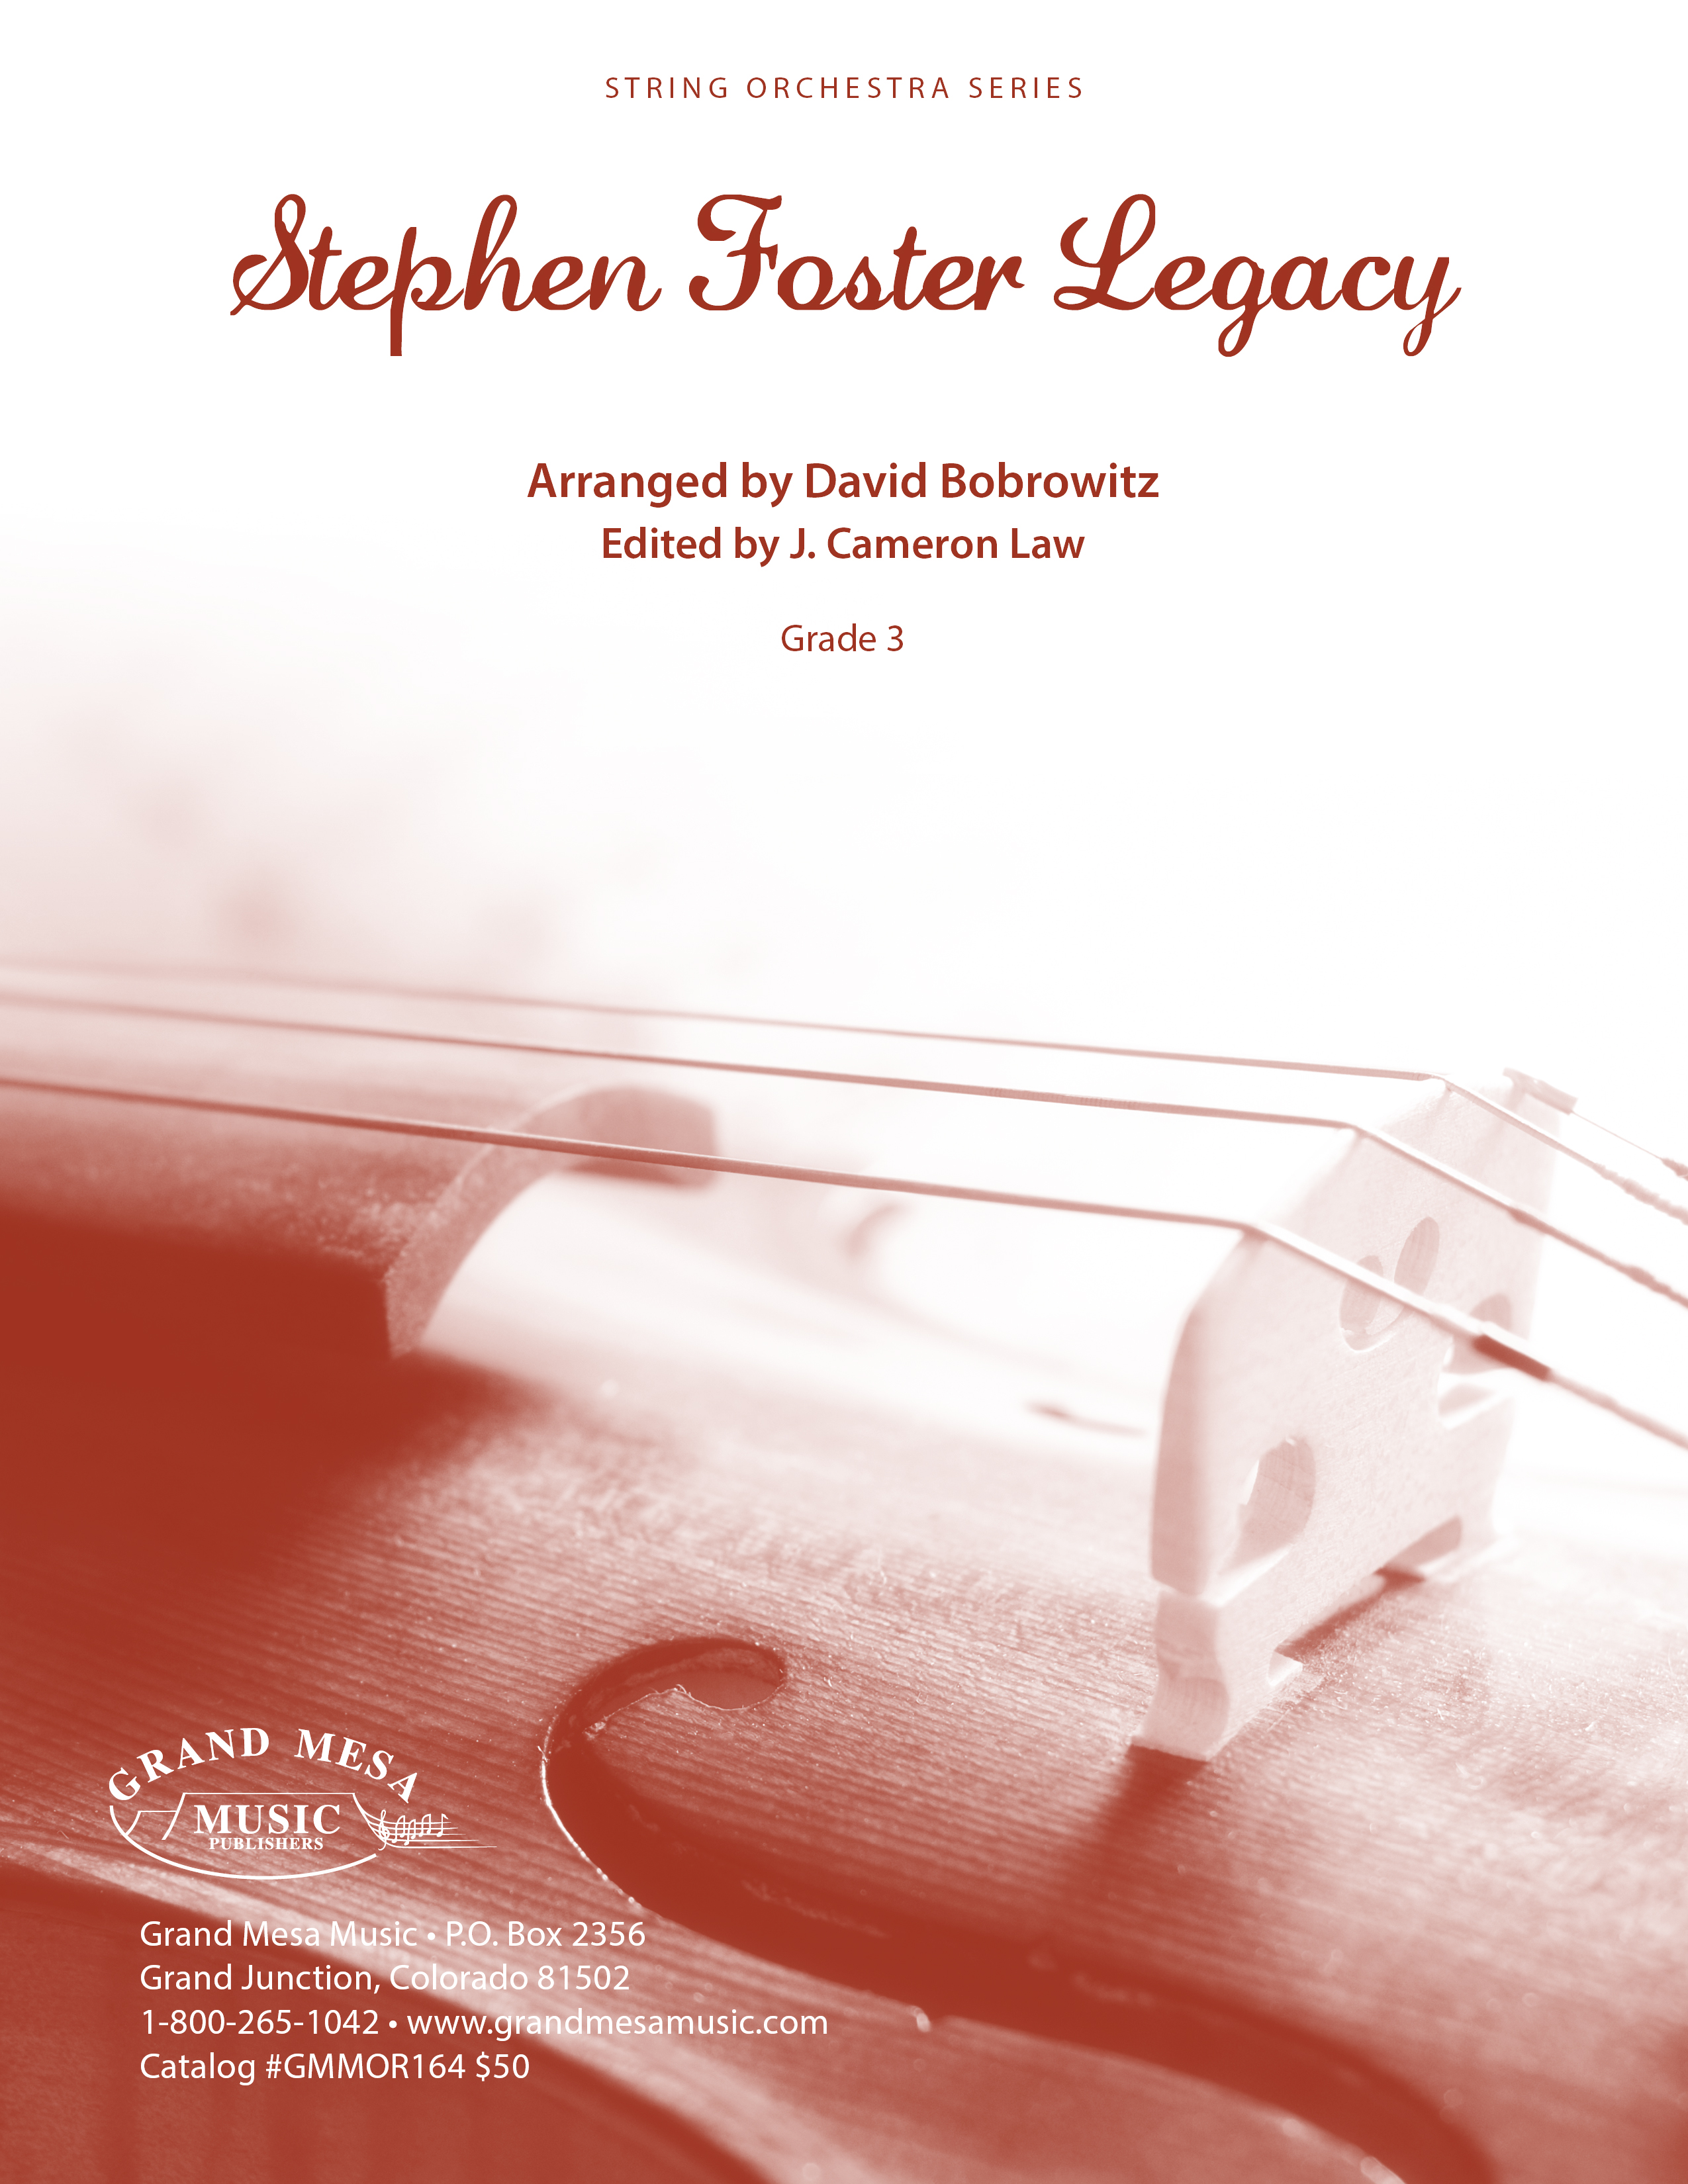 Stephen Foster Legacy